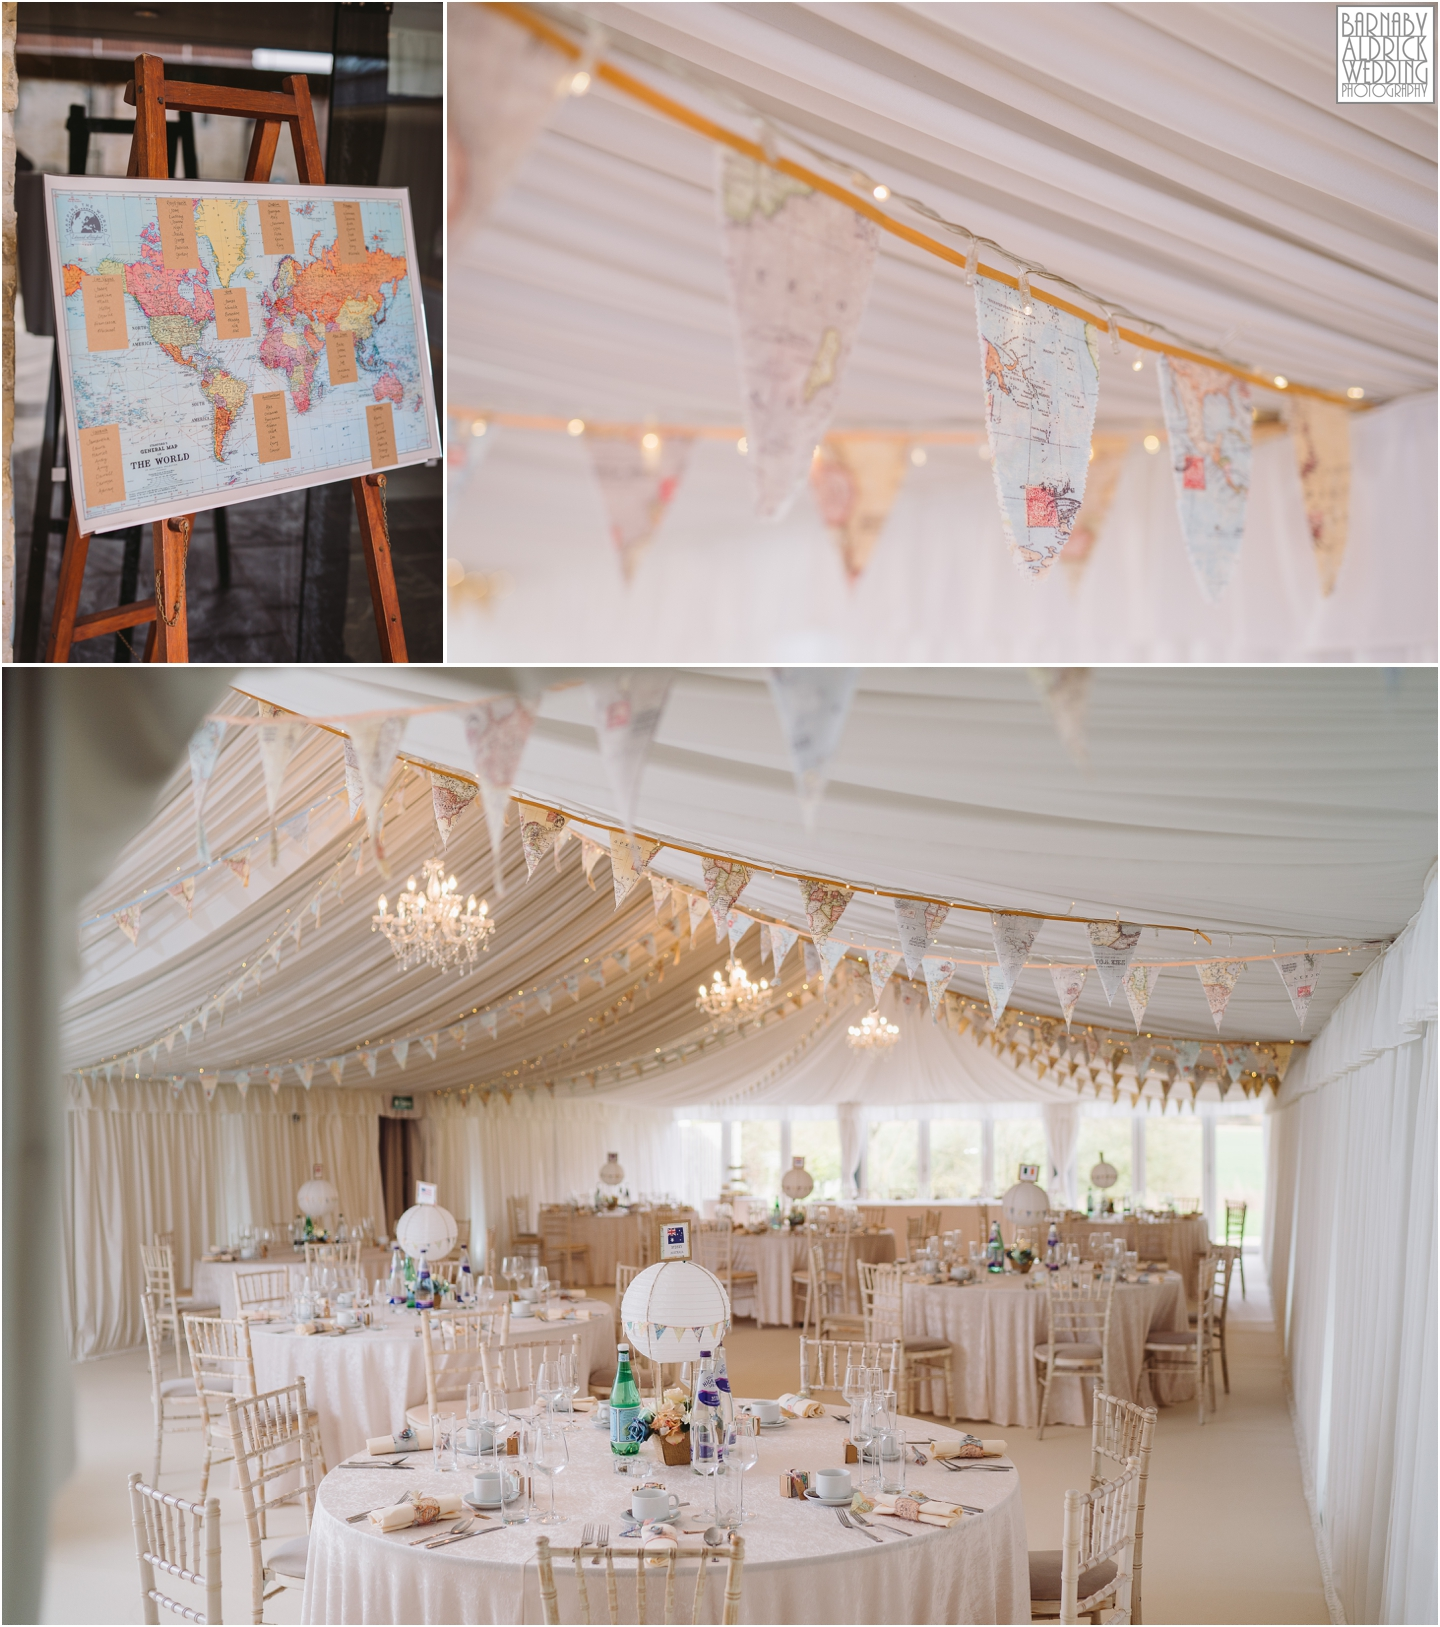 Priory Cottages Wedding Marquee, Meal space at Priory Cottages Yorkshire, Bright white travel themed wedding marquee, Wedding breakfast ideas